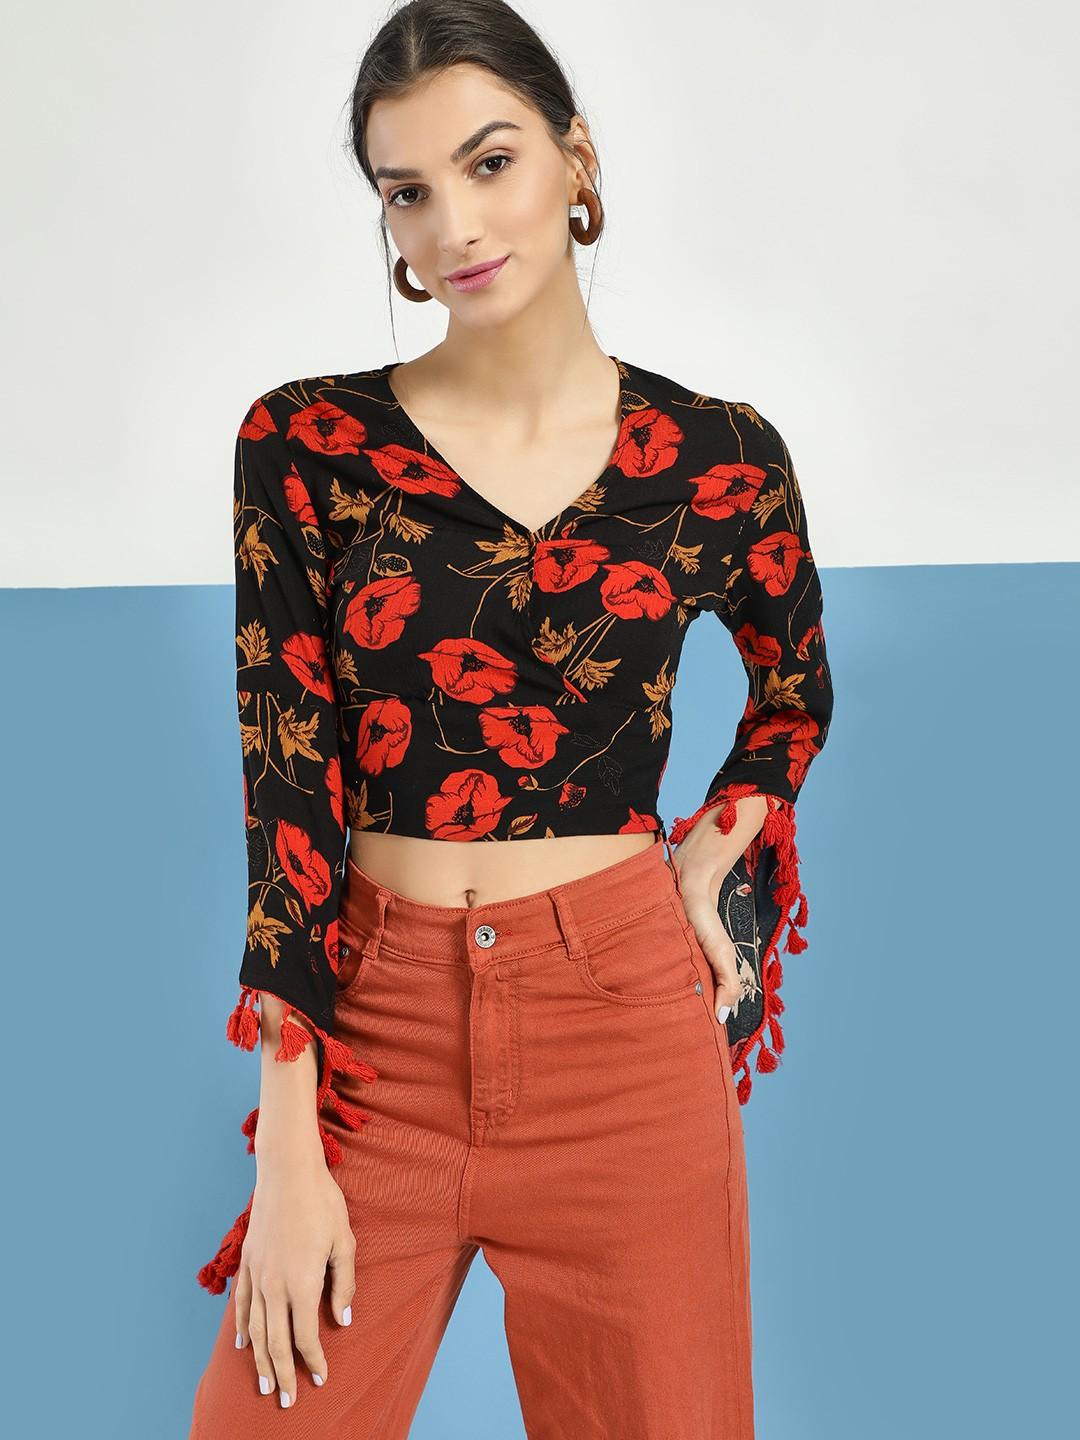 Rena Love Multi Floral Print Tassel Detail Crop Top 1